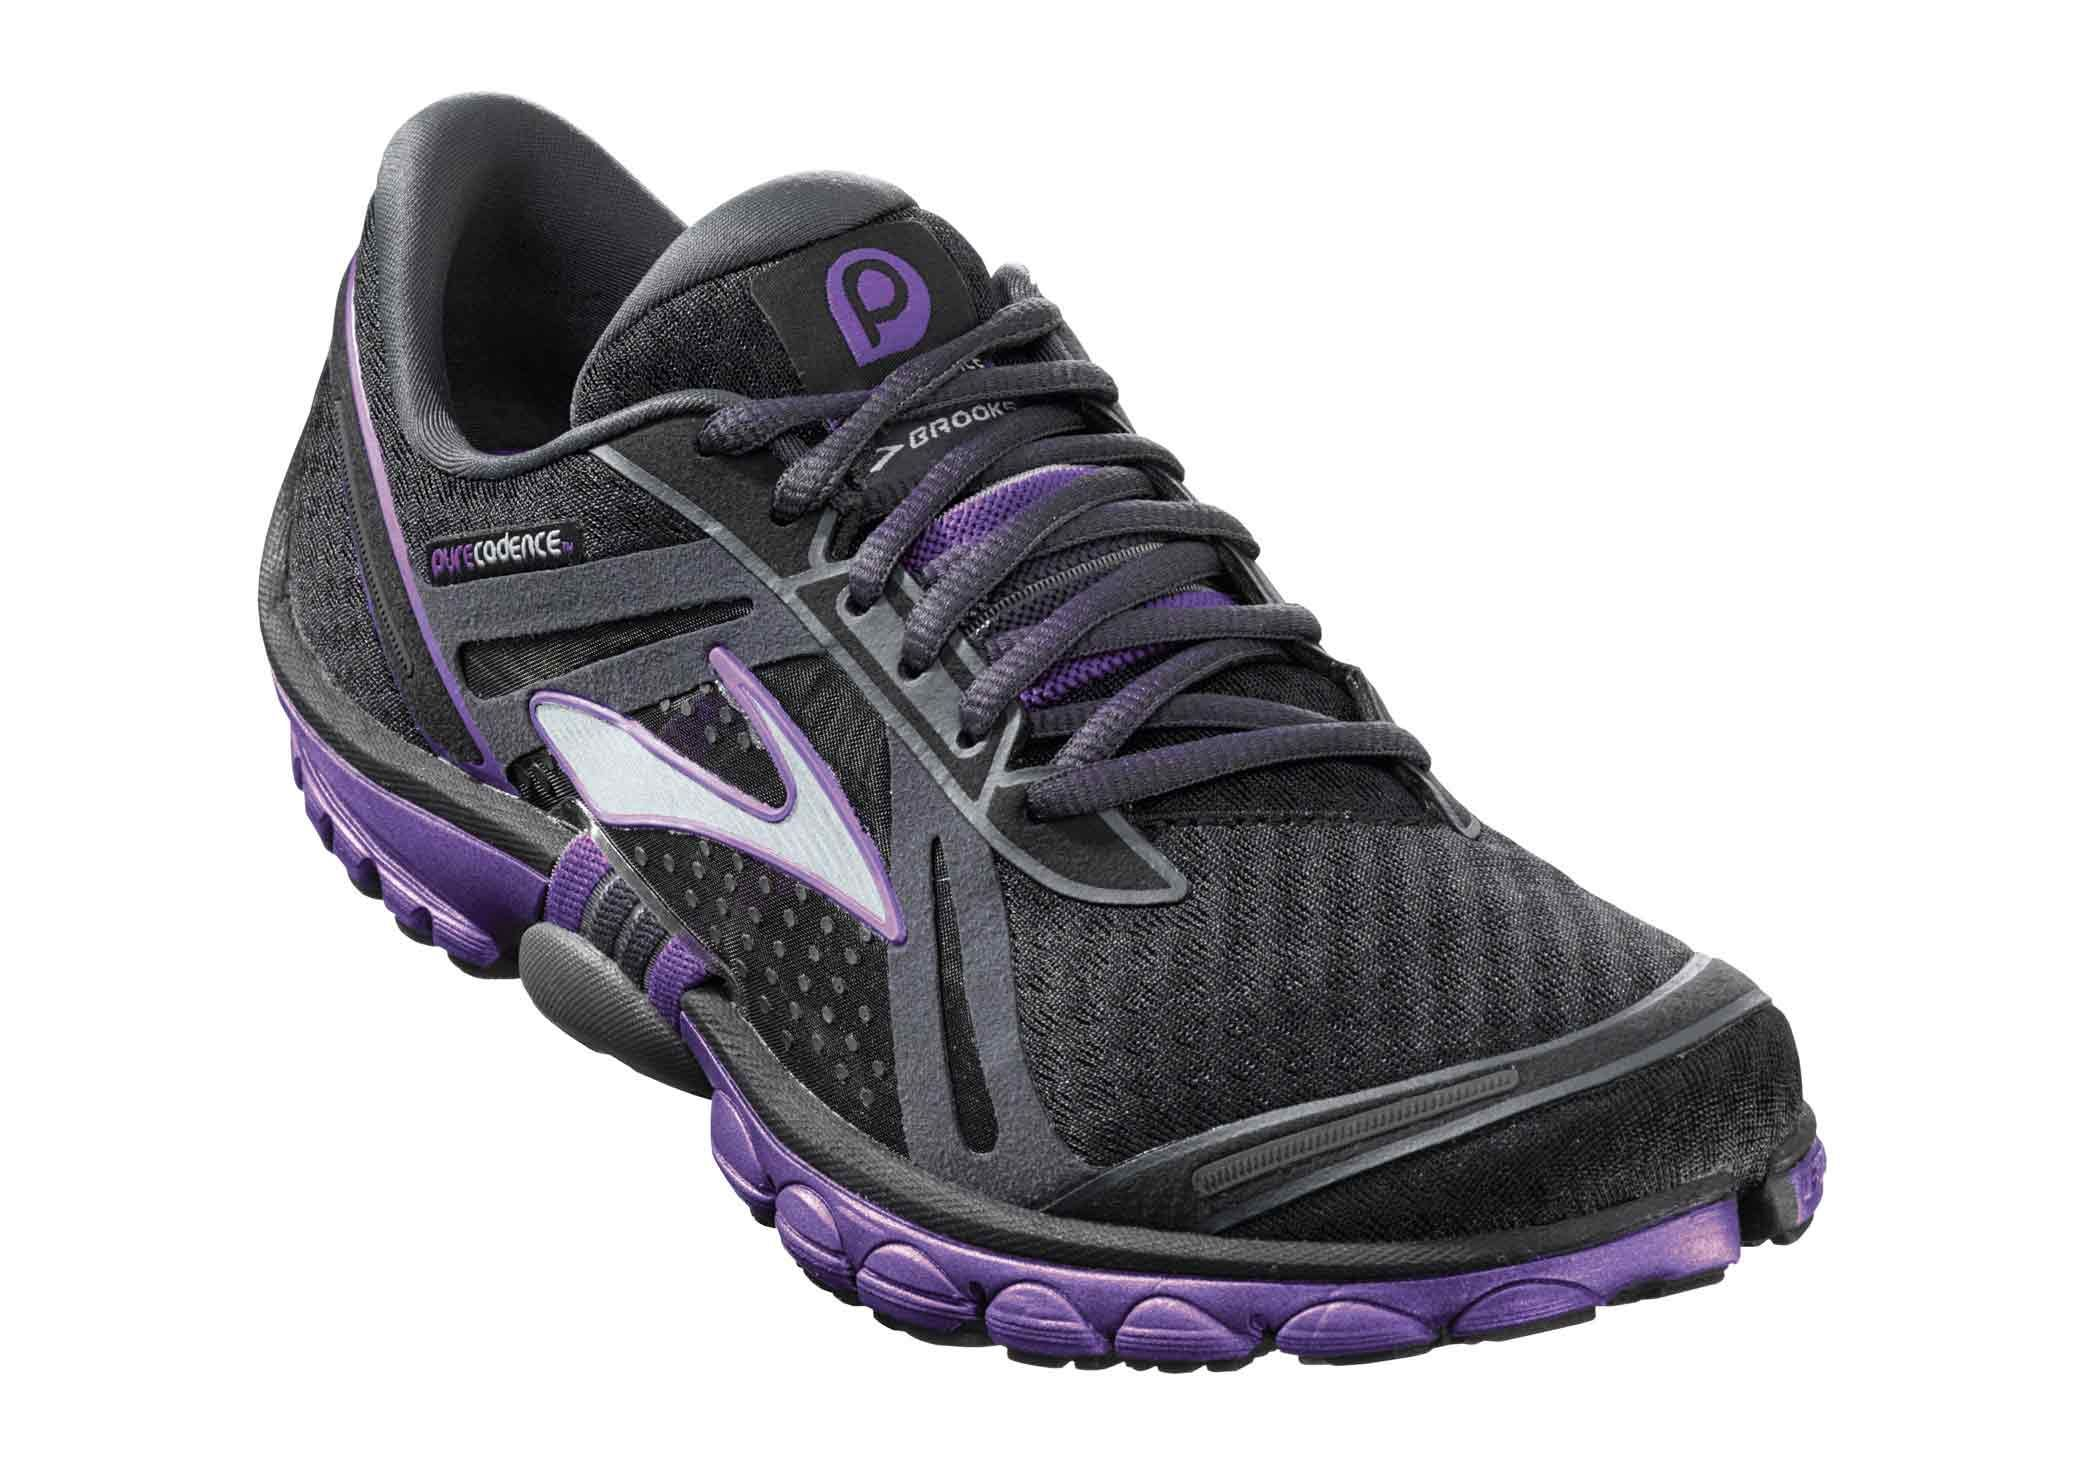 Women's PureCadence 120. Saving up for these! They have